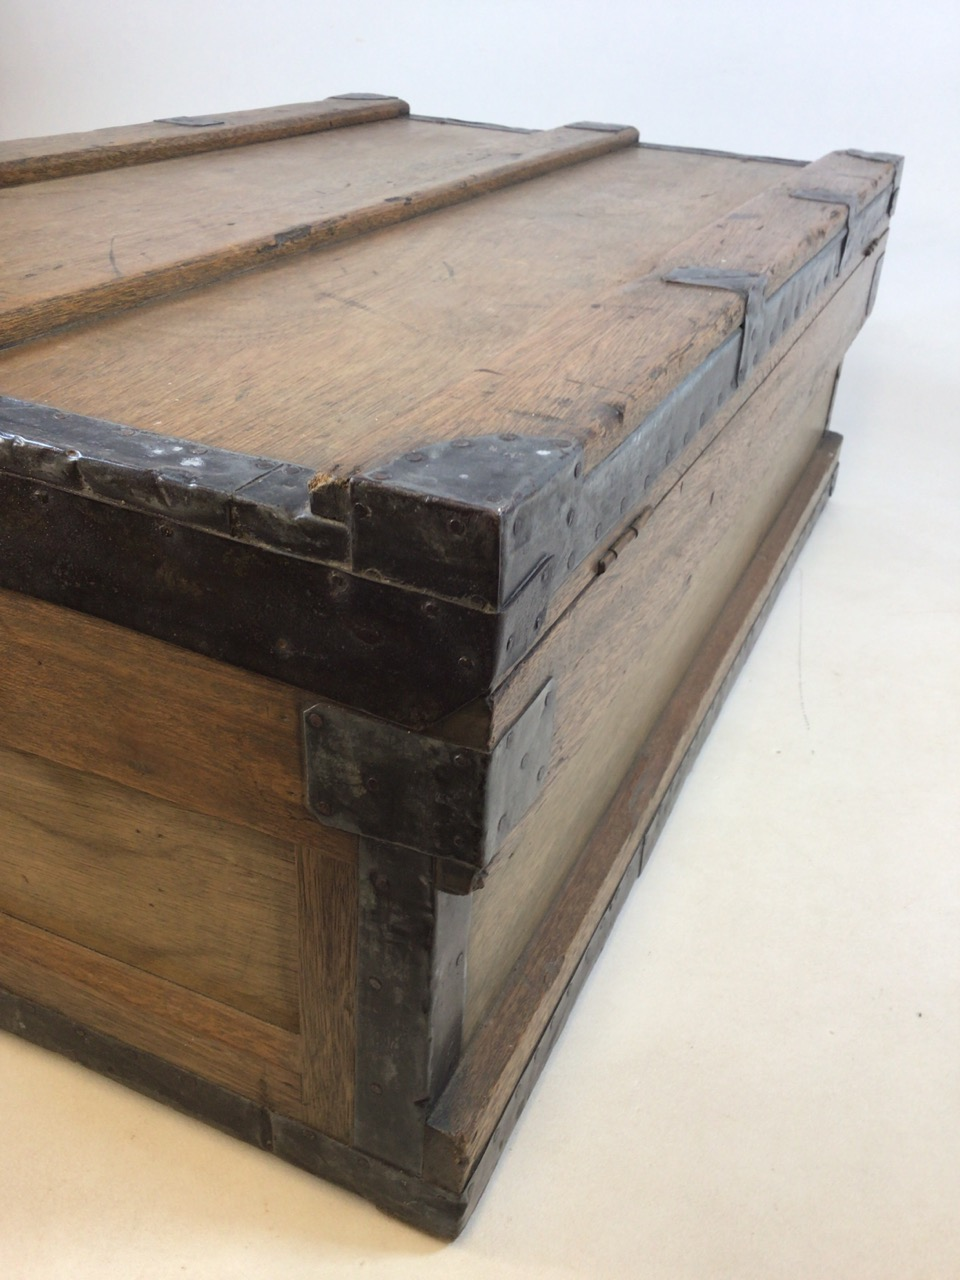 A large 19th century lead trunk with metal bound edges. W:97cm x D:60cm x H:36cm - Image 8 of 9